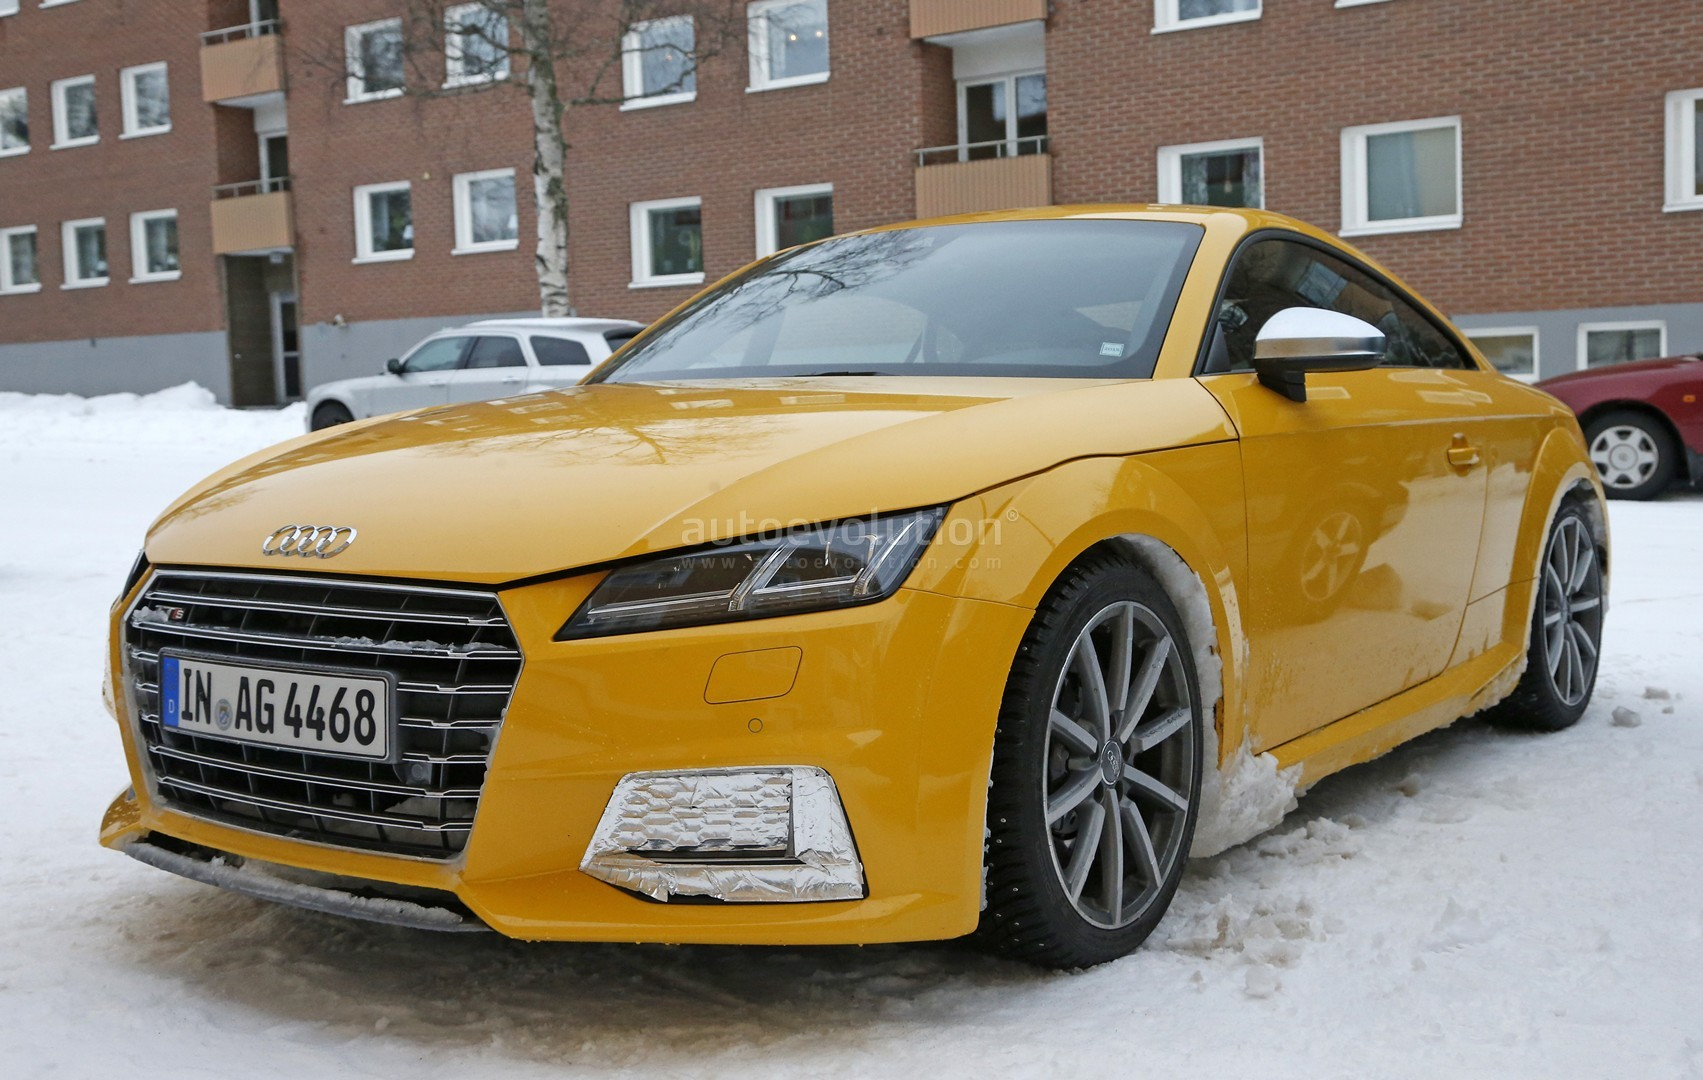 2017 audi tt rs spy photos reveal manual gearbox for the. Black Bedroom Furniture Sets. Home Design Ideas